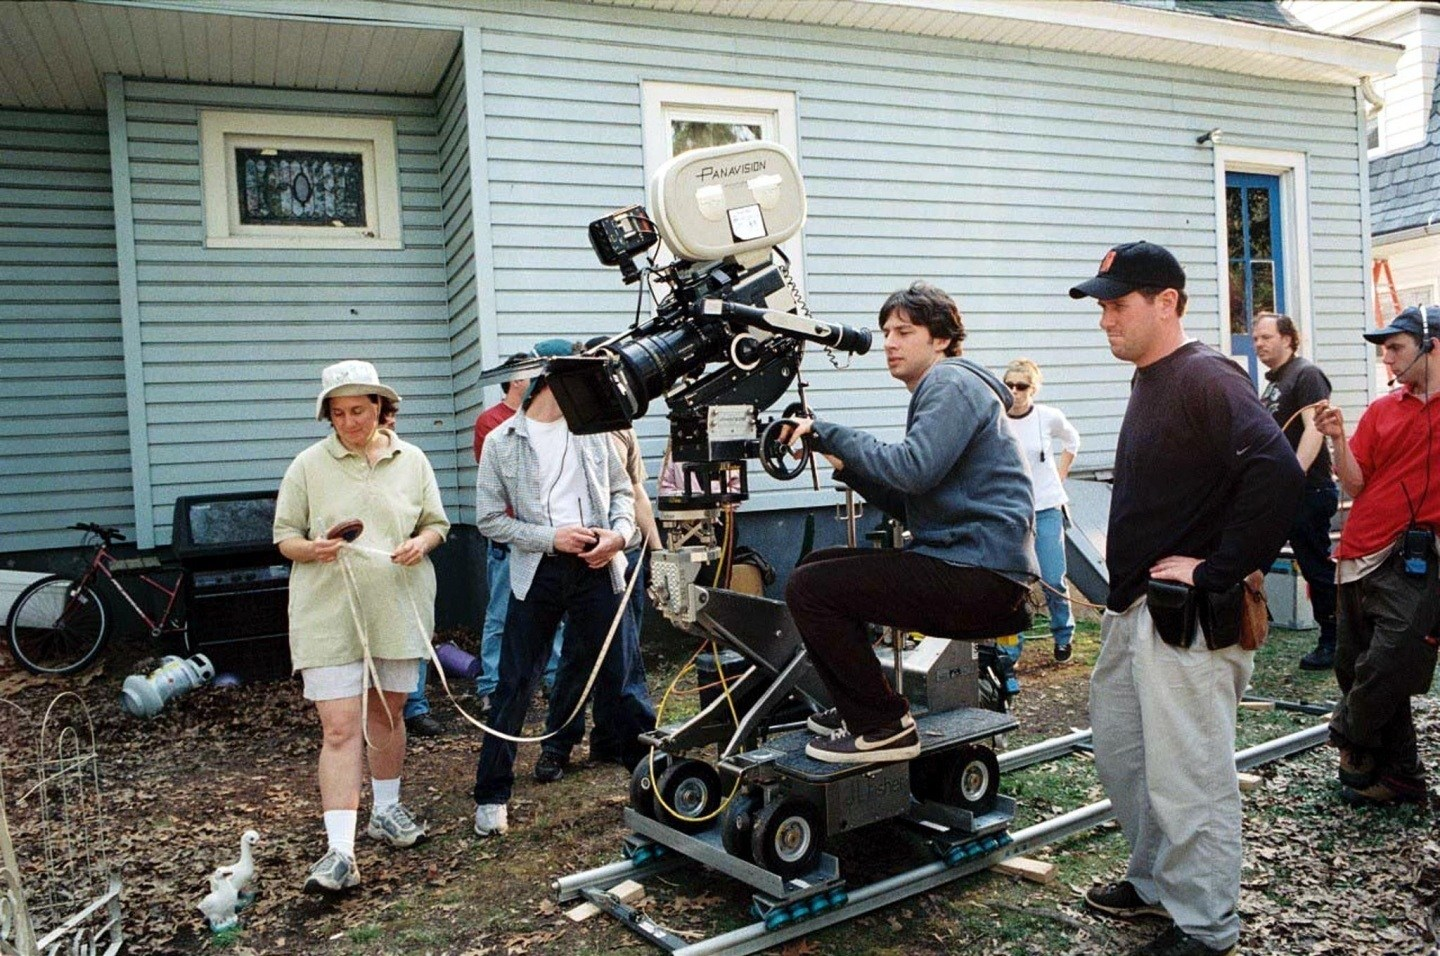 On Location :Garden State (2004) Behind the Scenes